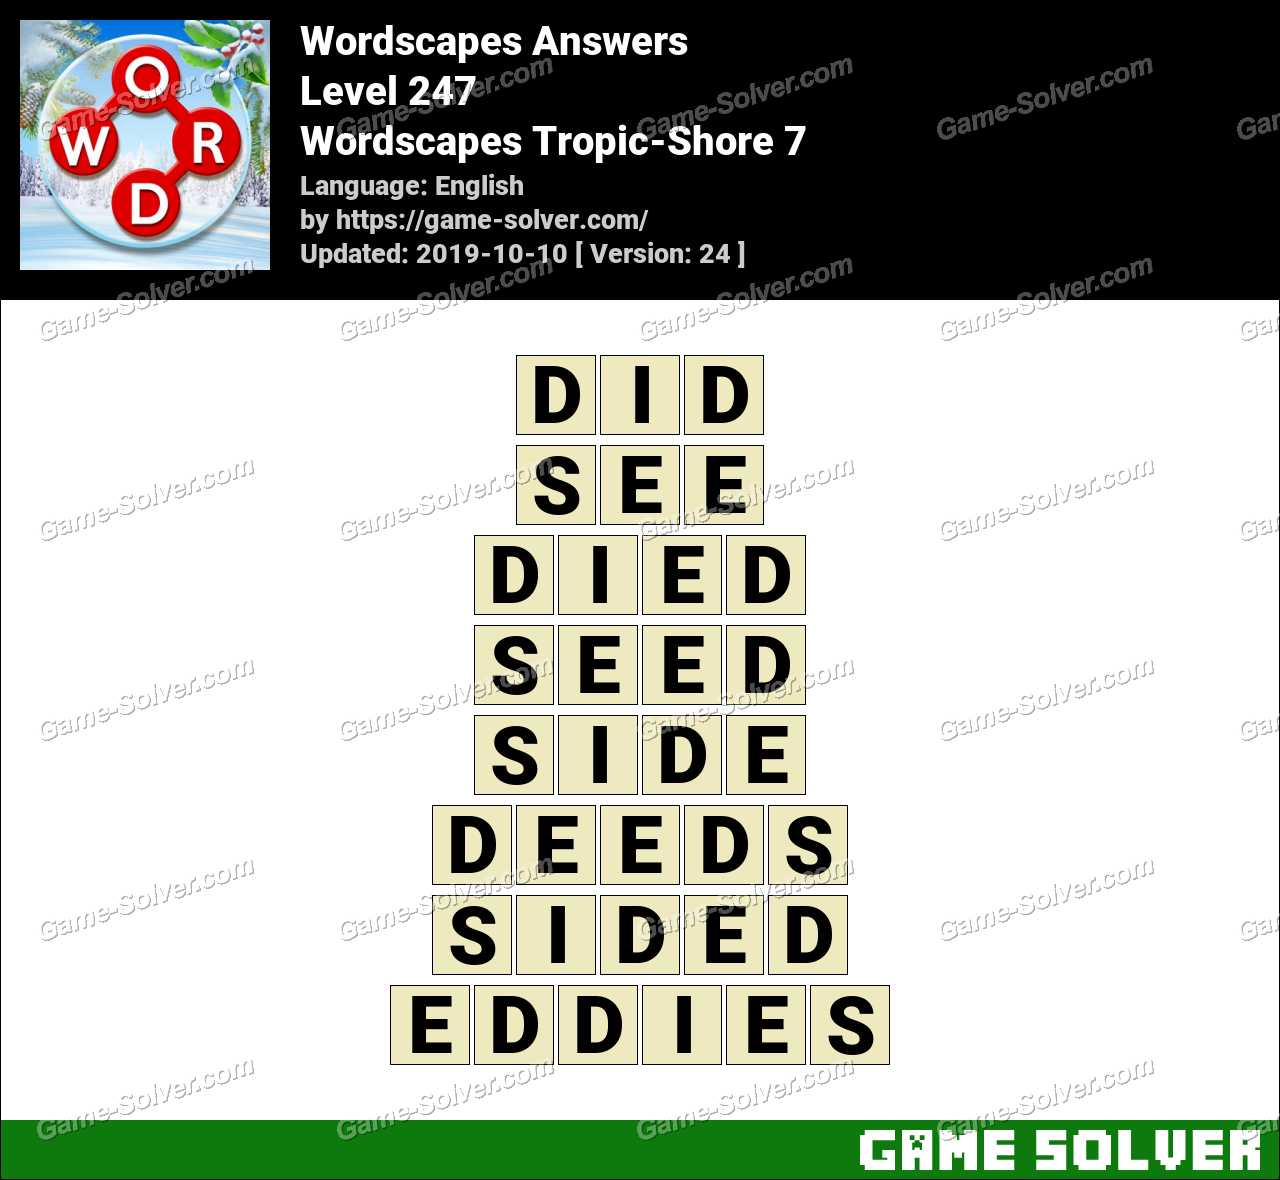 Wordscapes Tropic-Shore 7 Answers